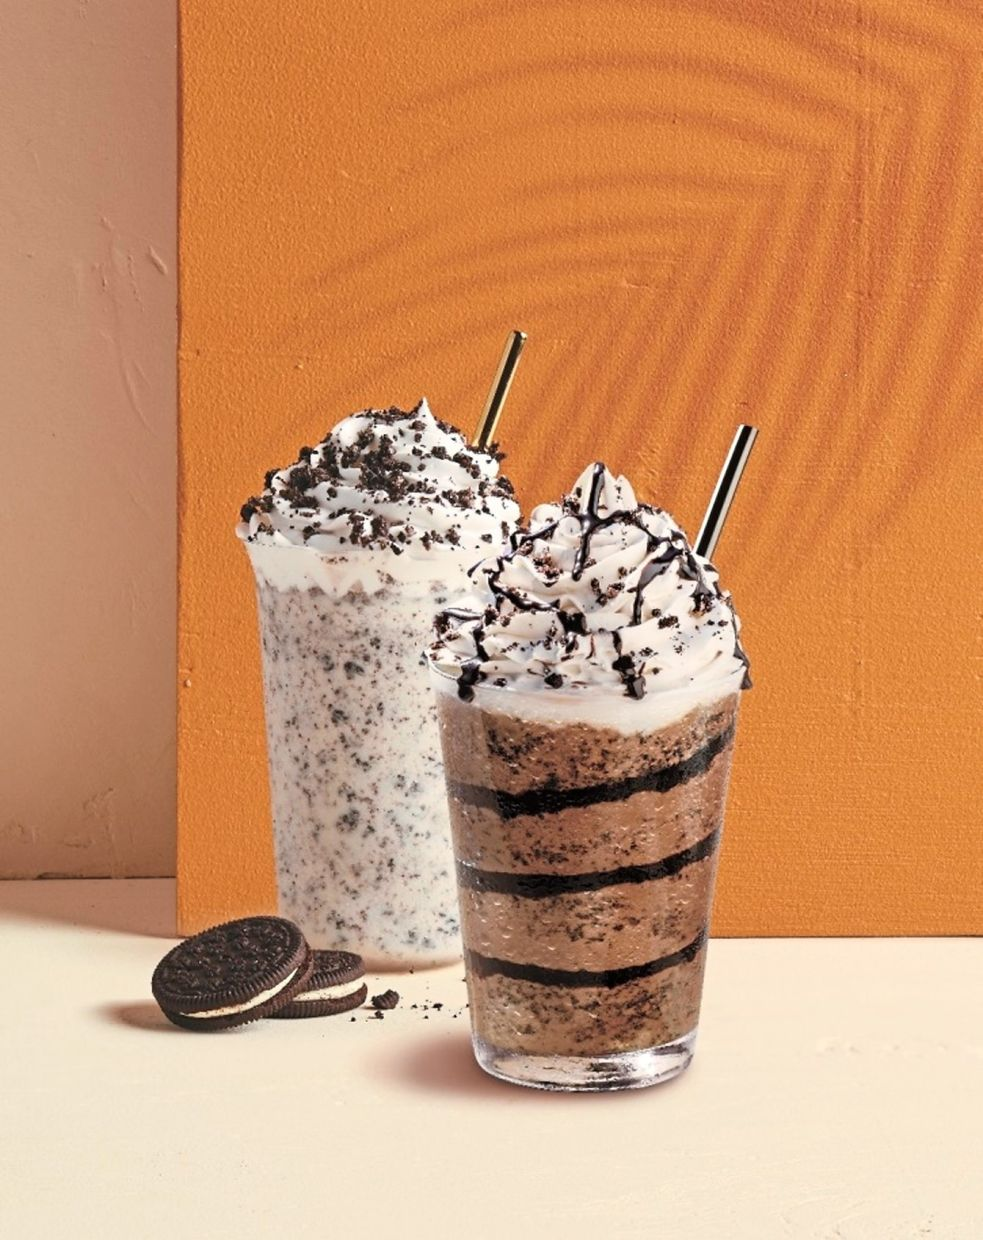 Newly updated selection features Cookies & Cream beverages.